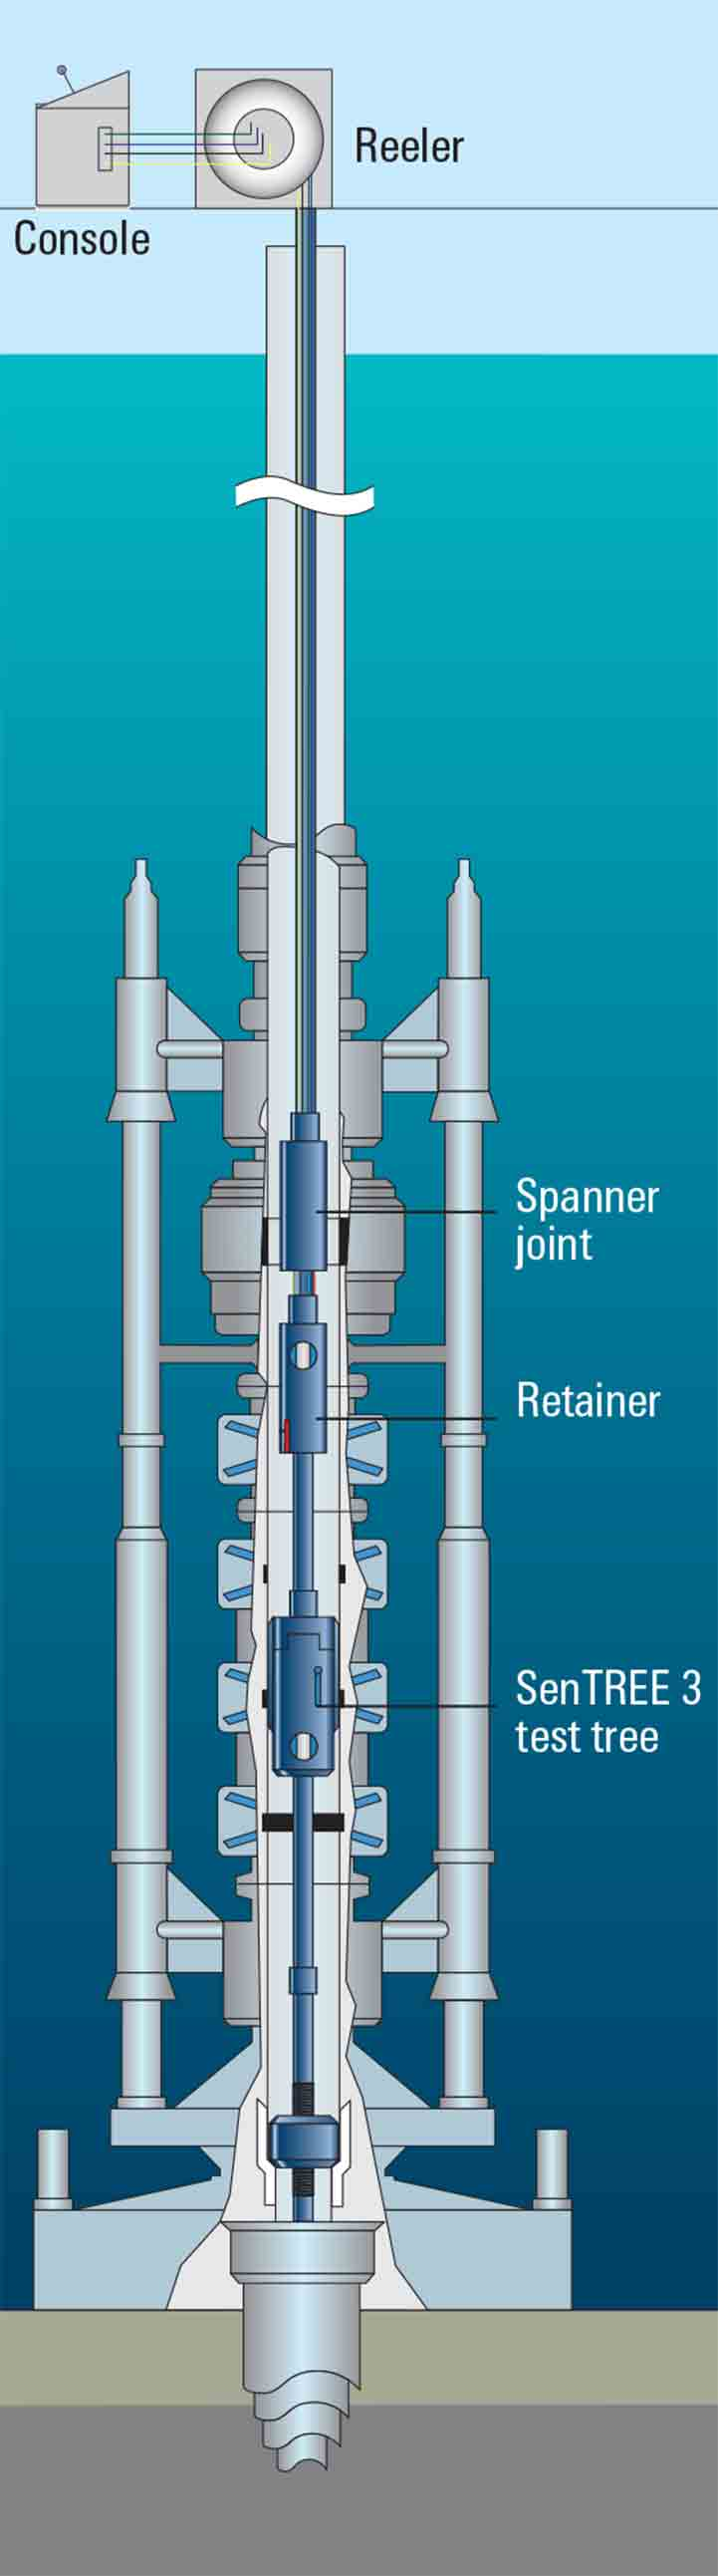 The SenTREE 3 test tree is designed specifically for well testing and cleanup operations from floating rigs.